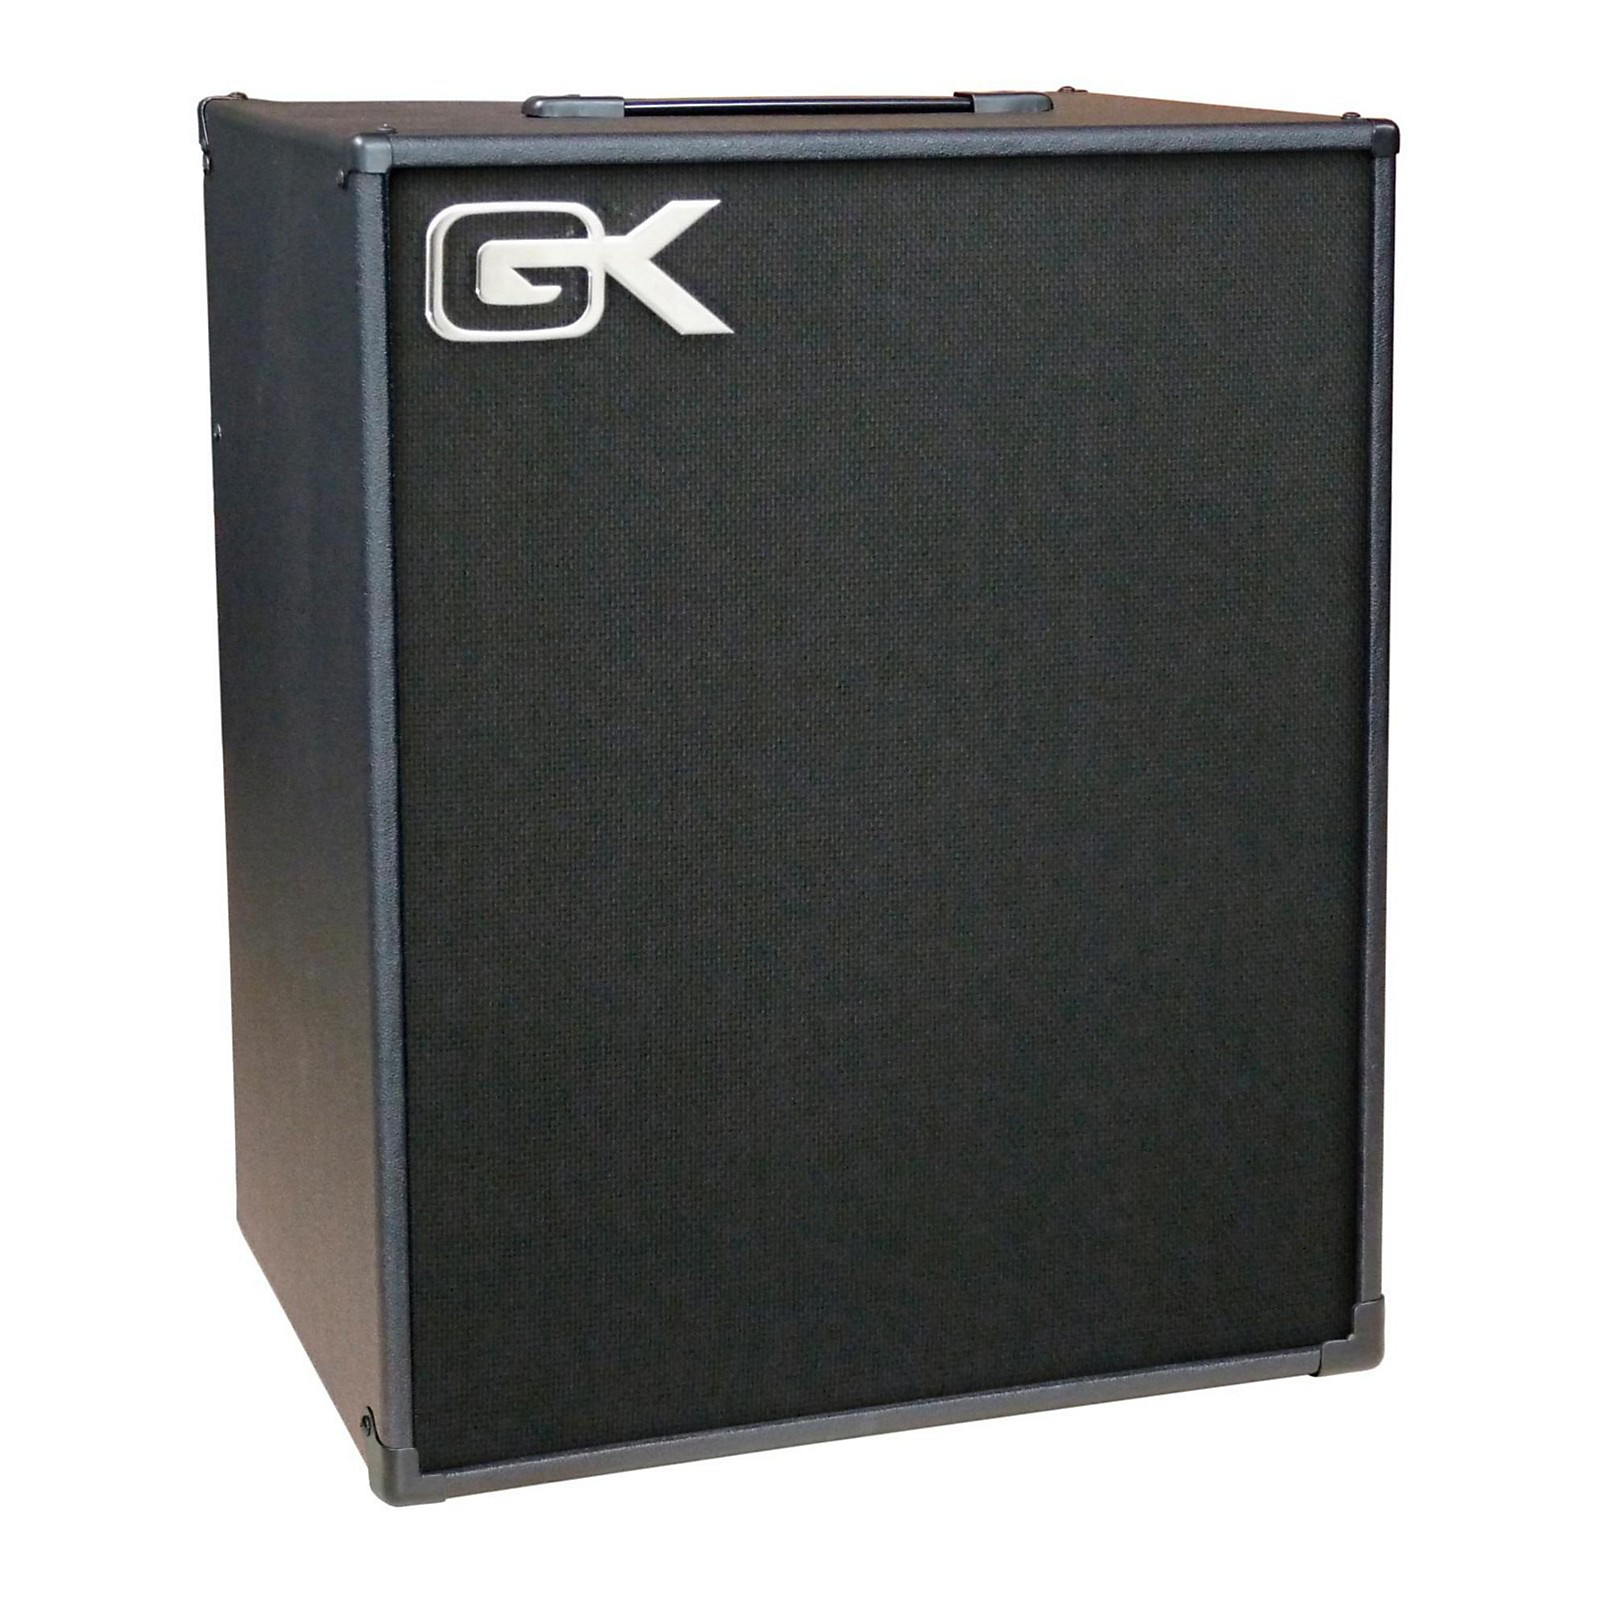 Gallien-Krueger MB210-II 2x10 500W Ultralight Bass Combo Amp with Tolex Covering